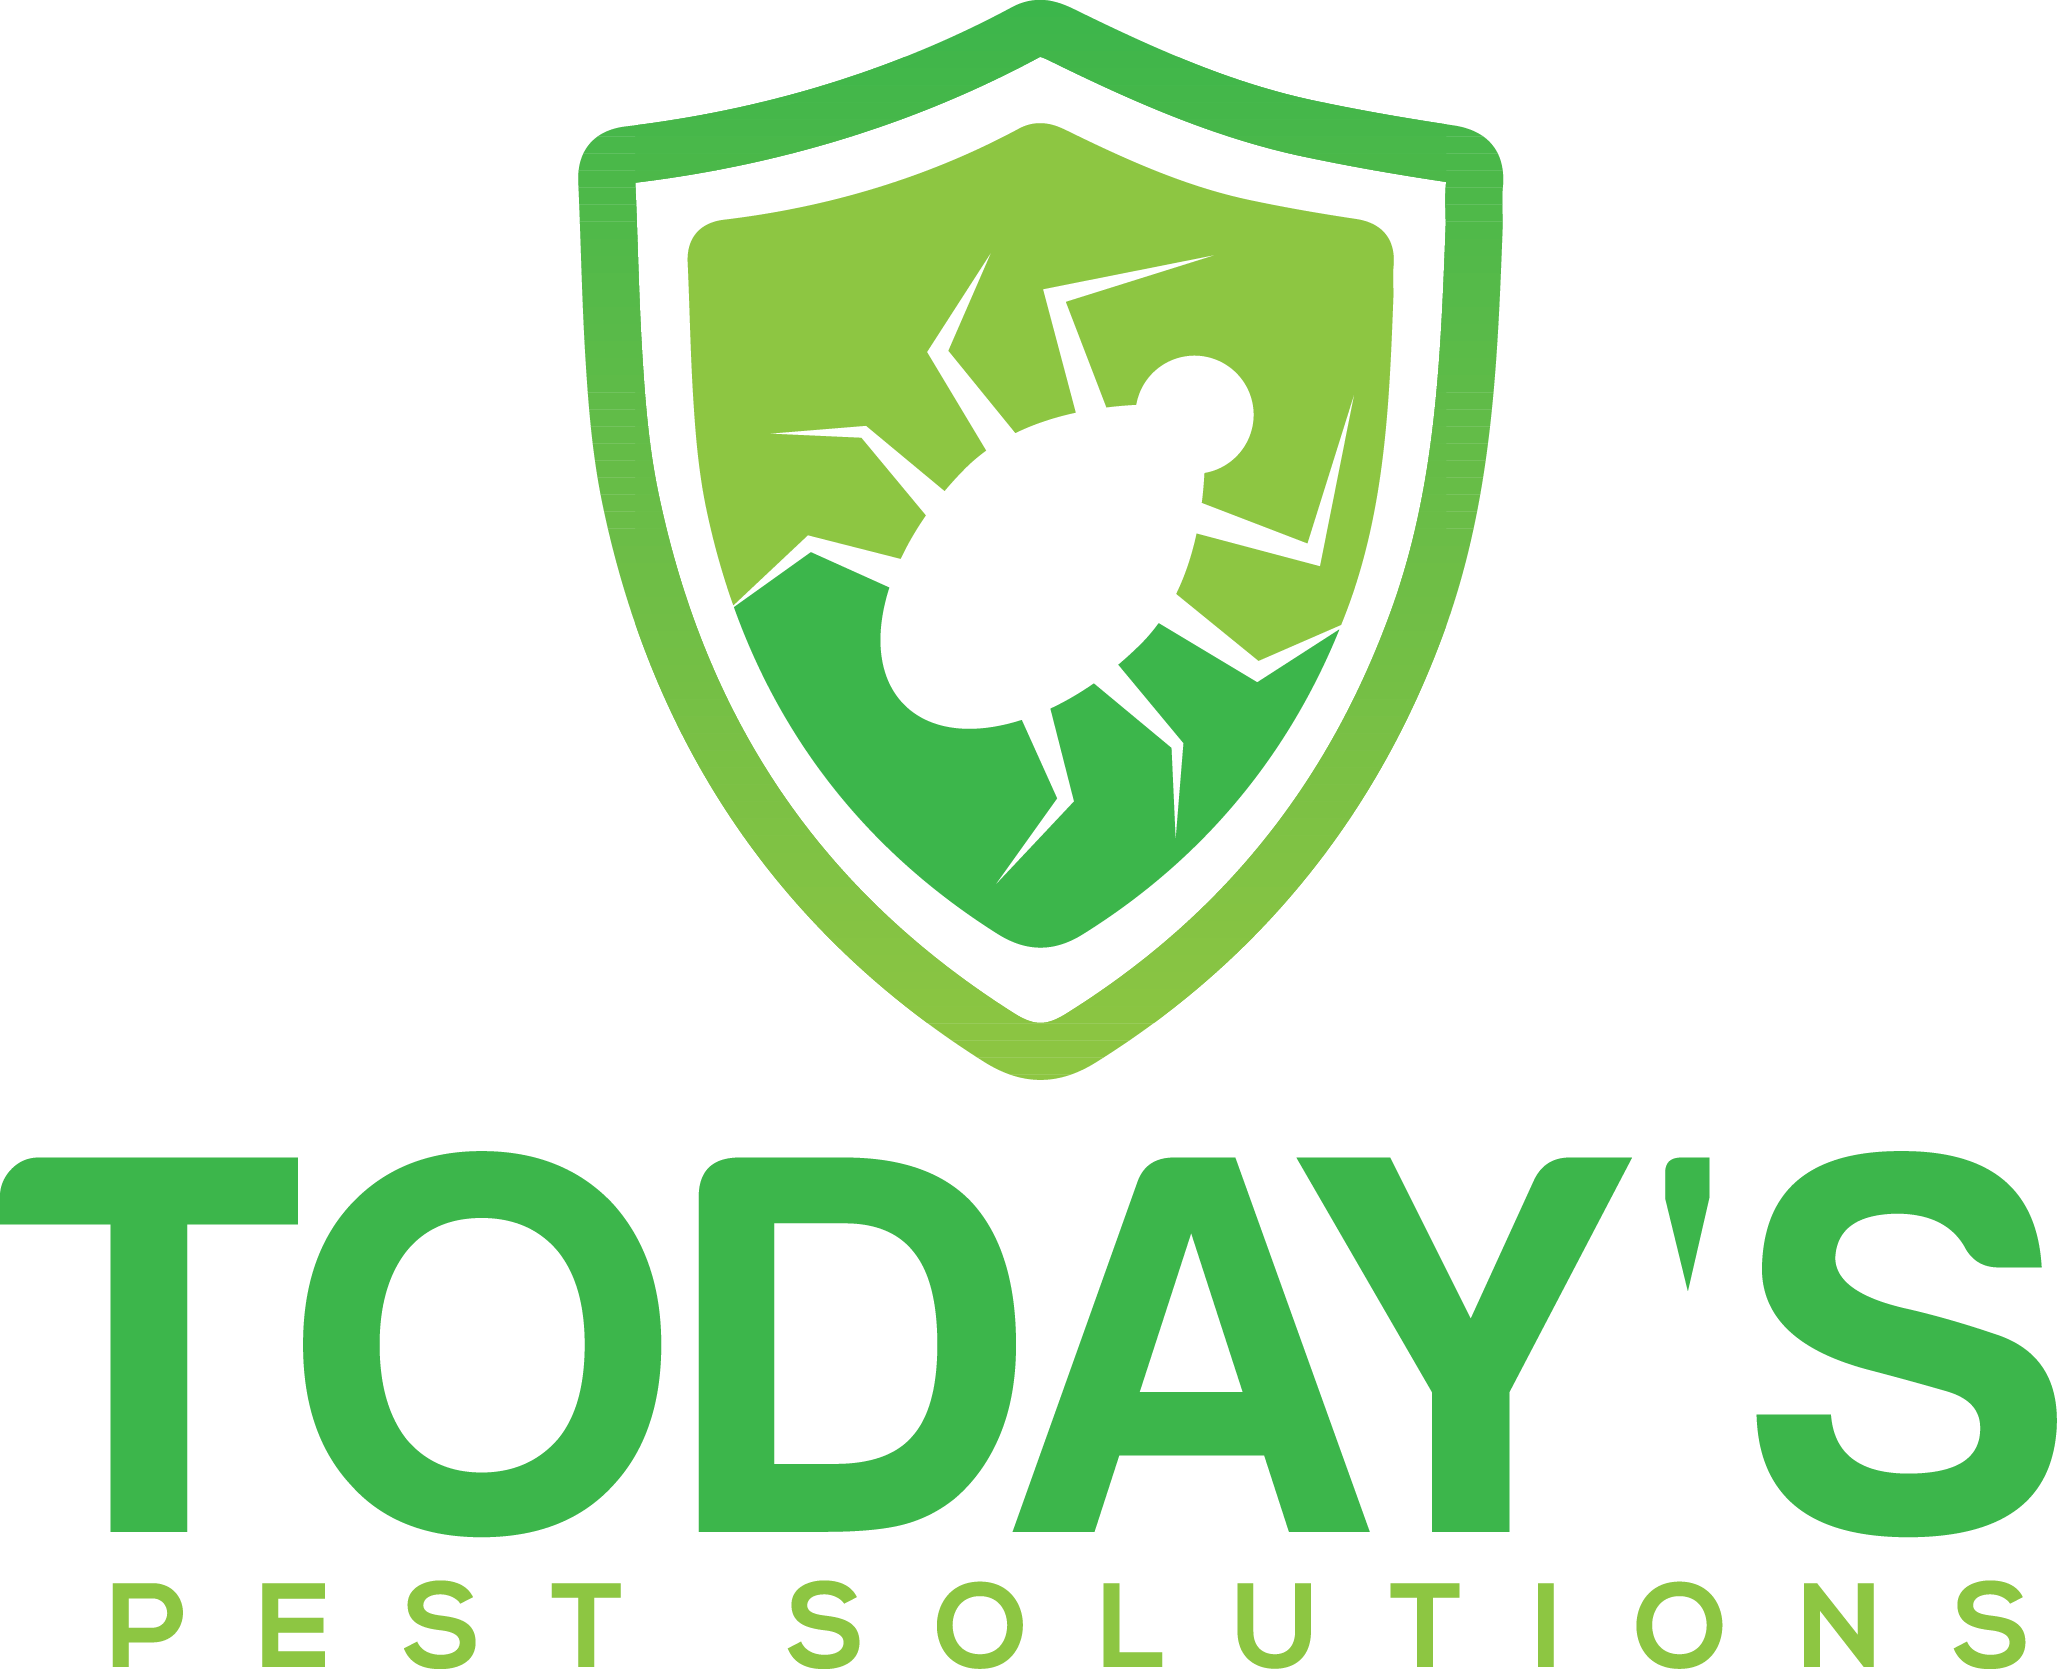 Today's Pest Solutions